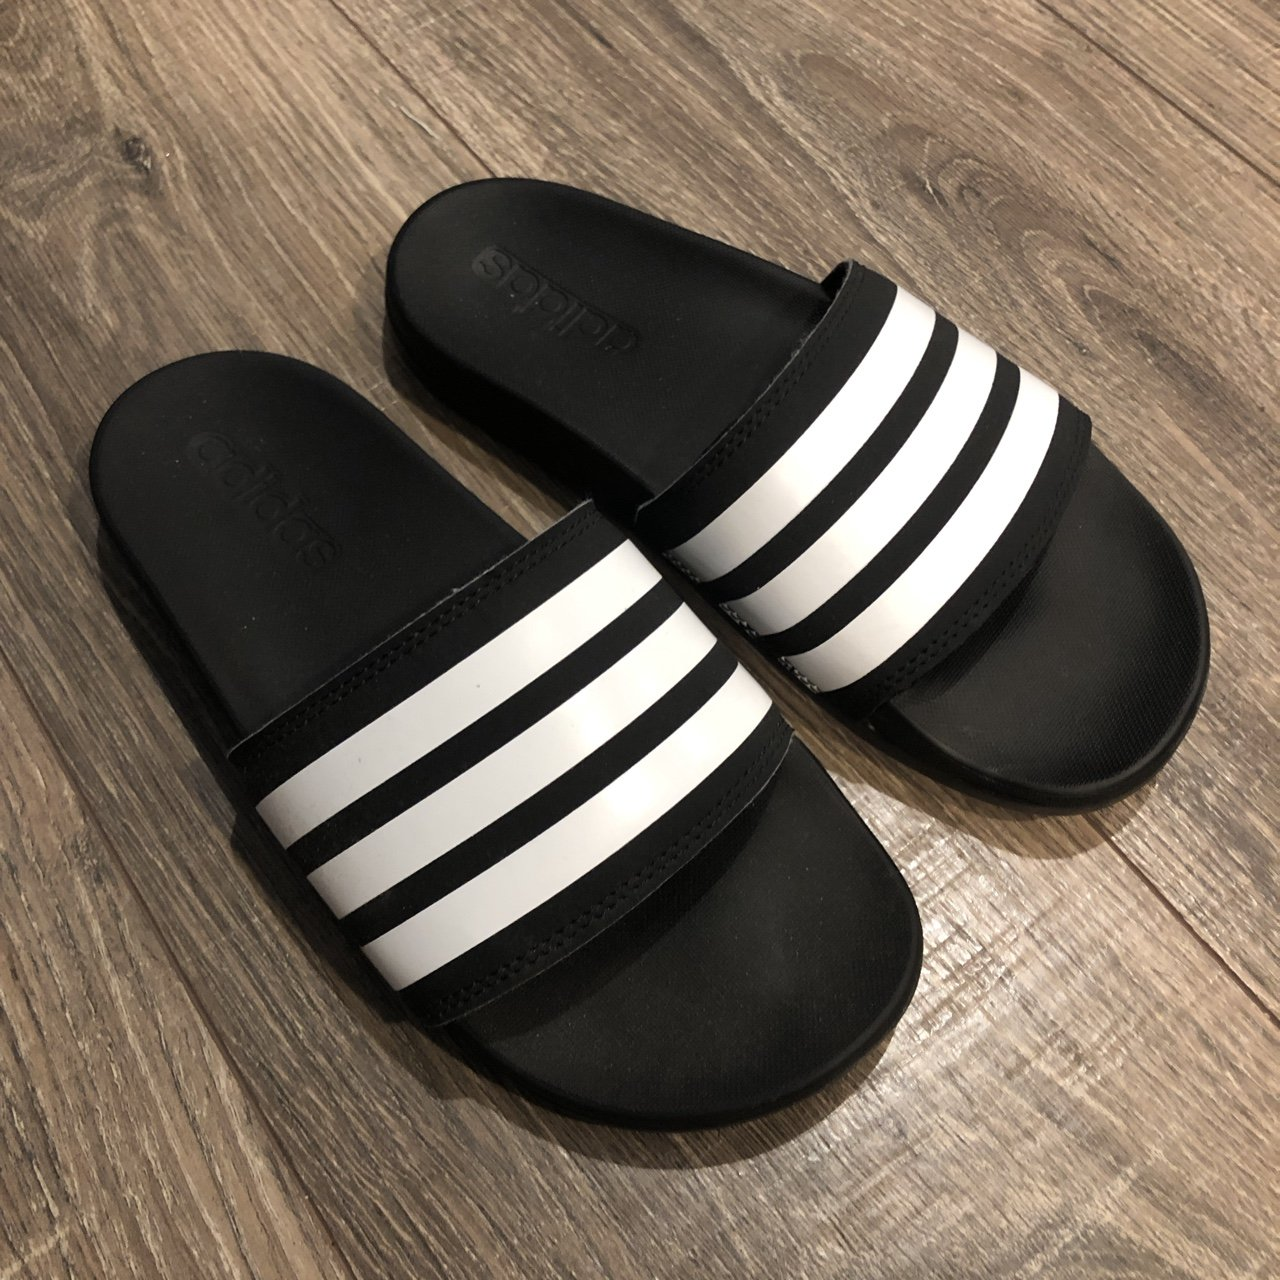 f2f9aacee Adidas Cloudfoam Slides Men s Size 5 which converts to a new - Depop